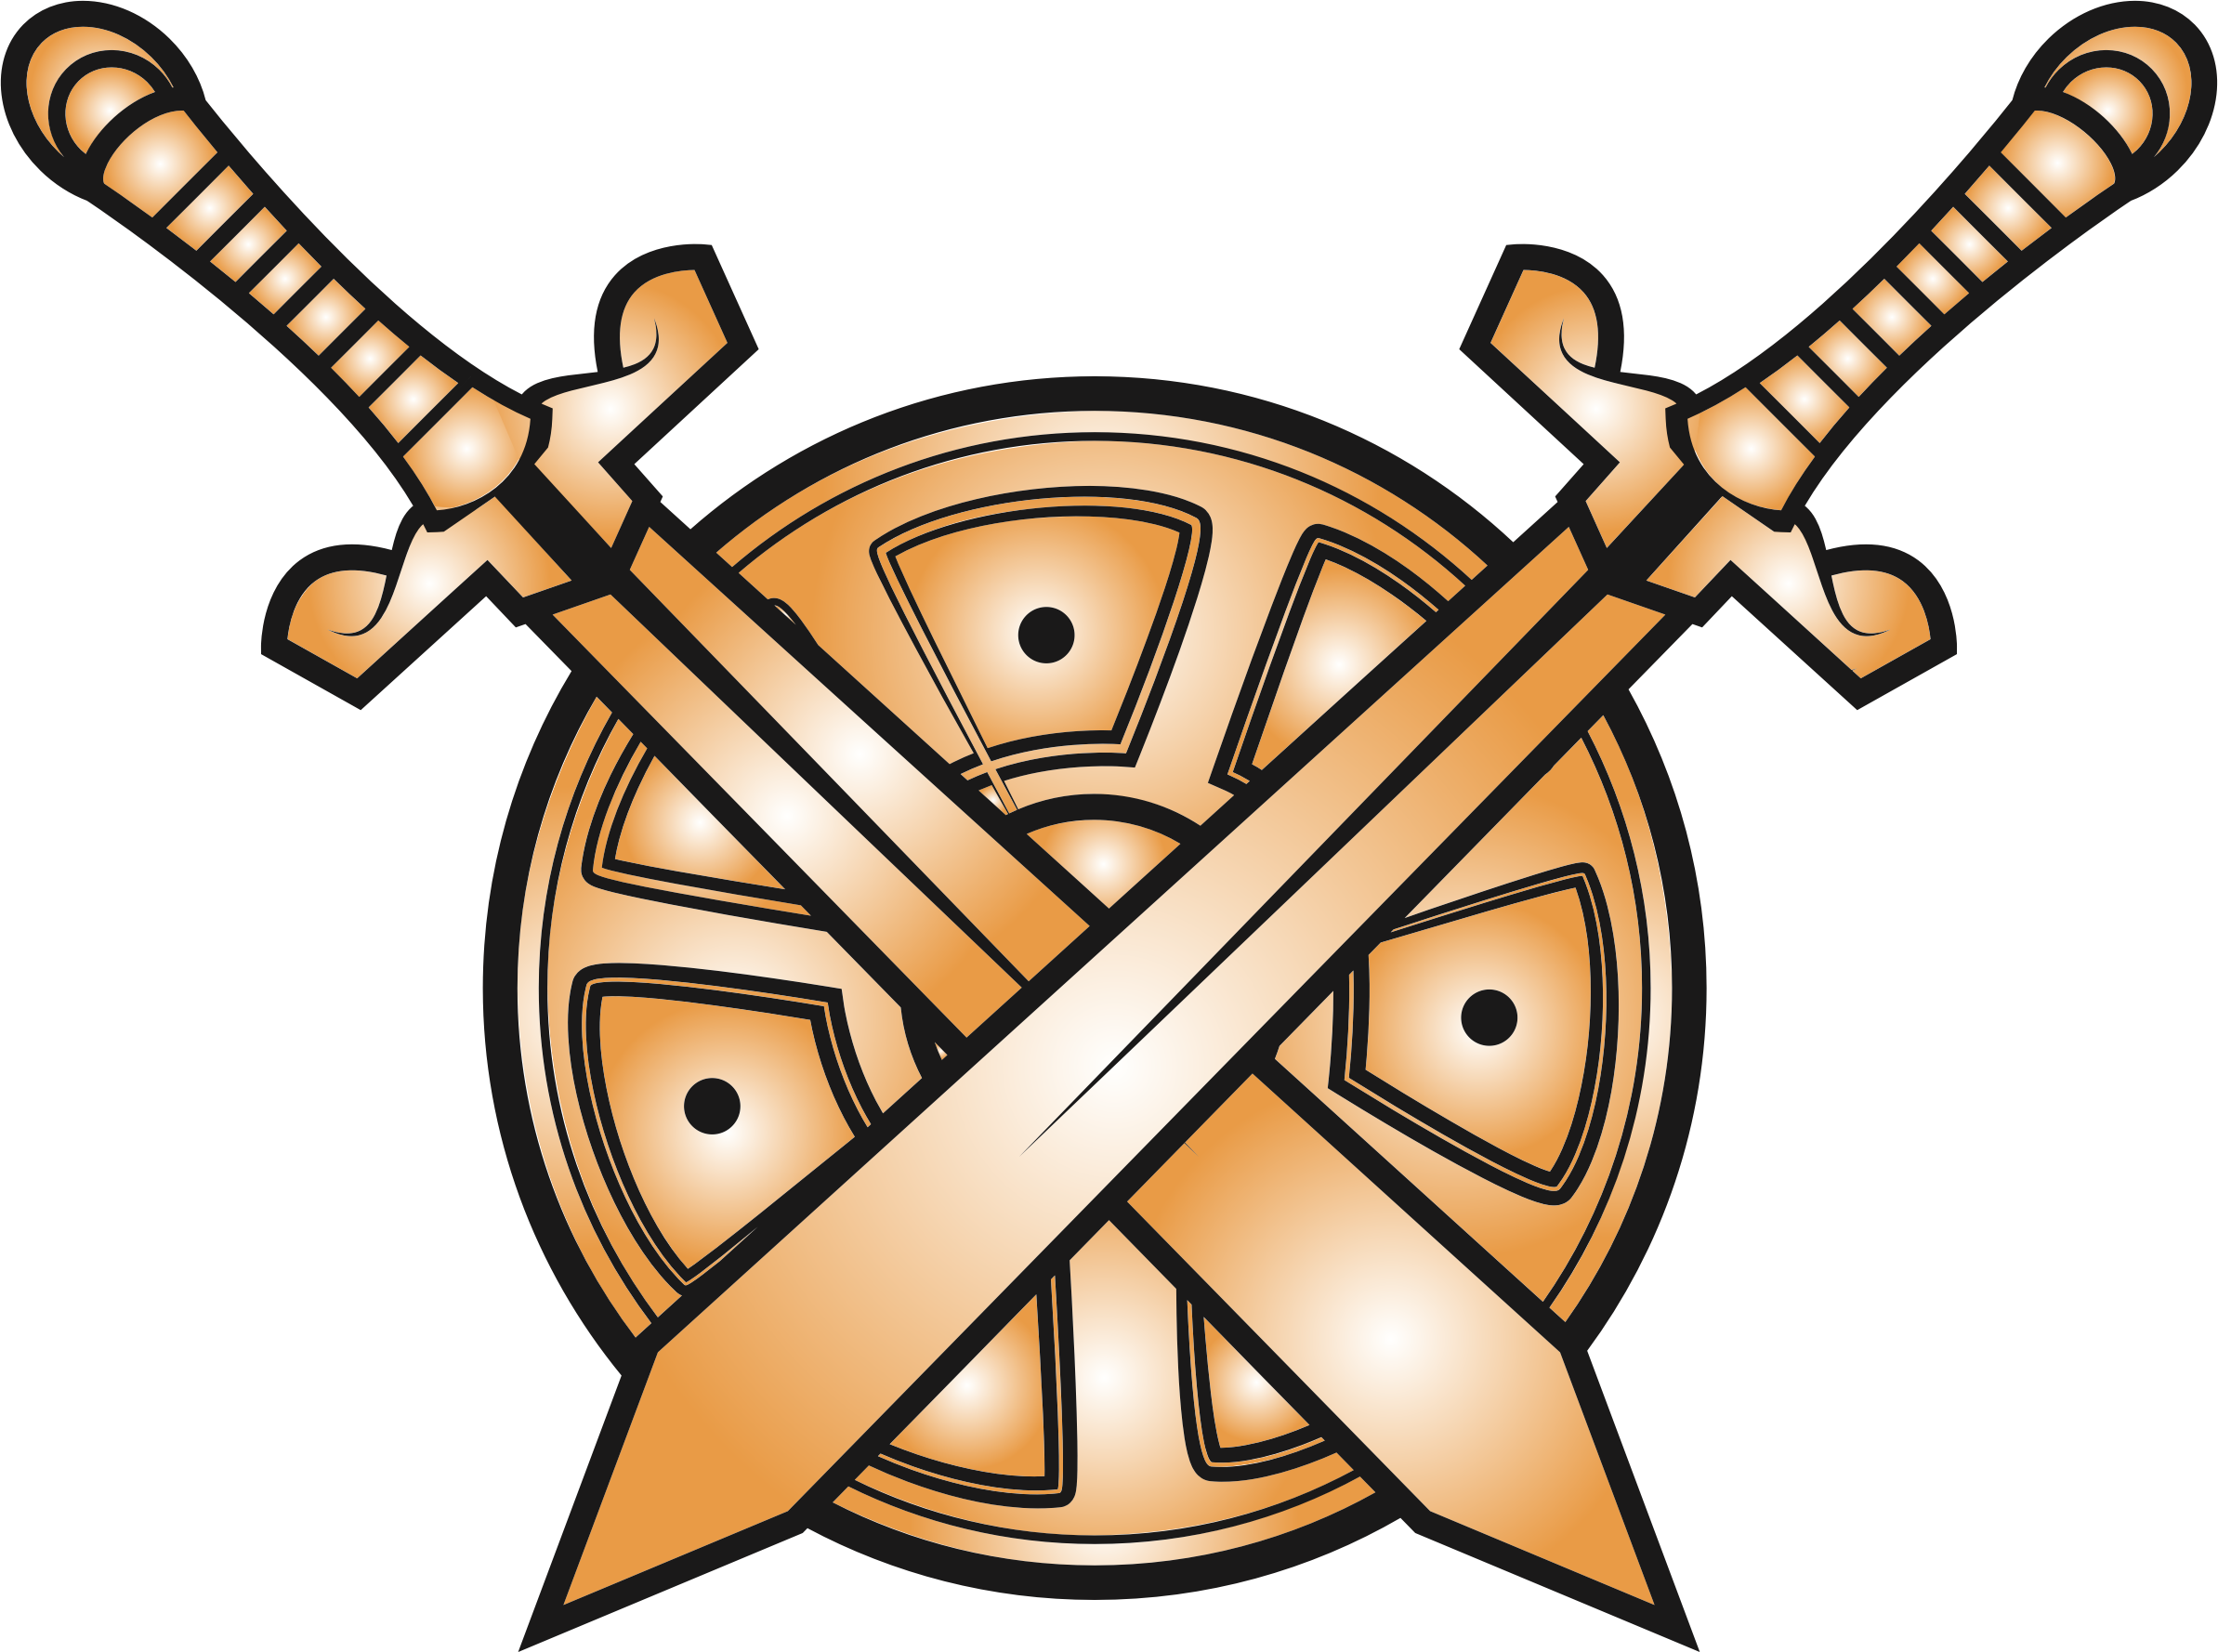 trojan sword clipart - HD 2387×1778